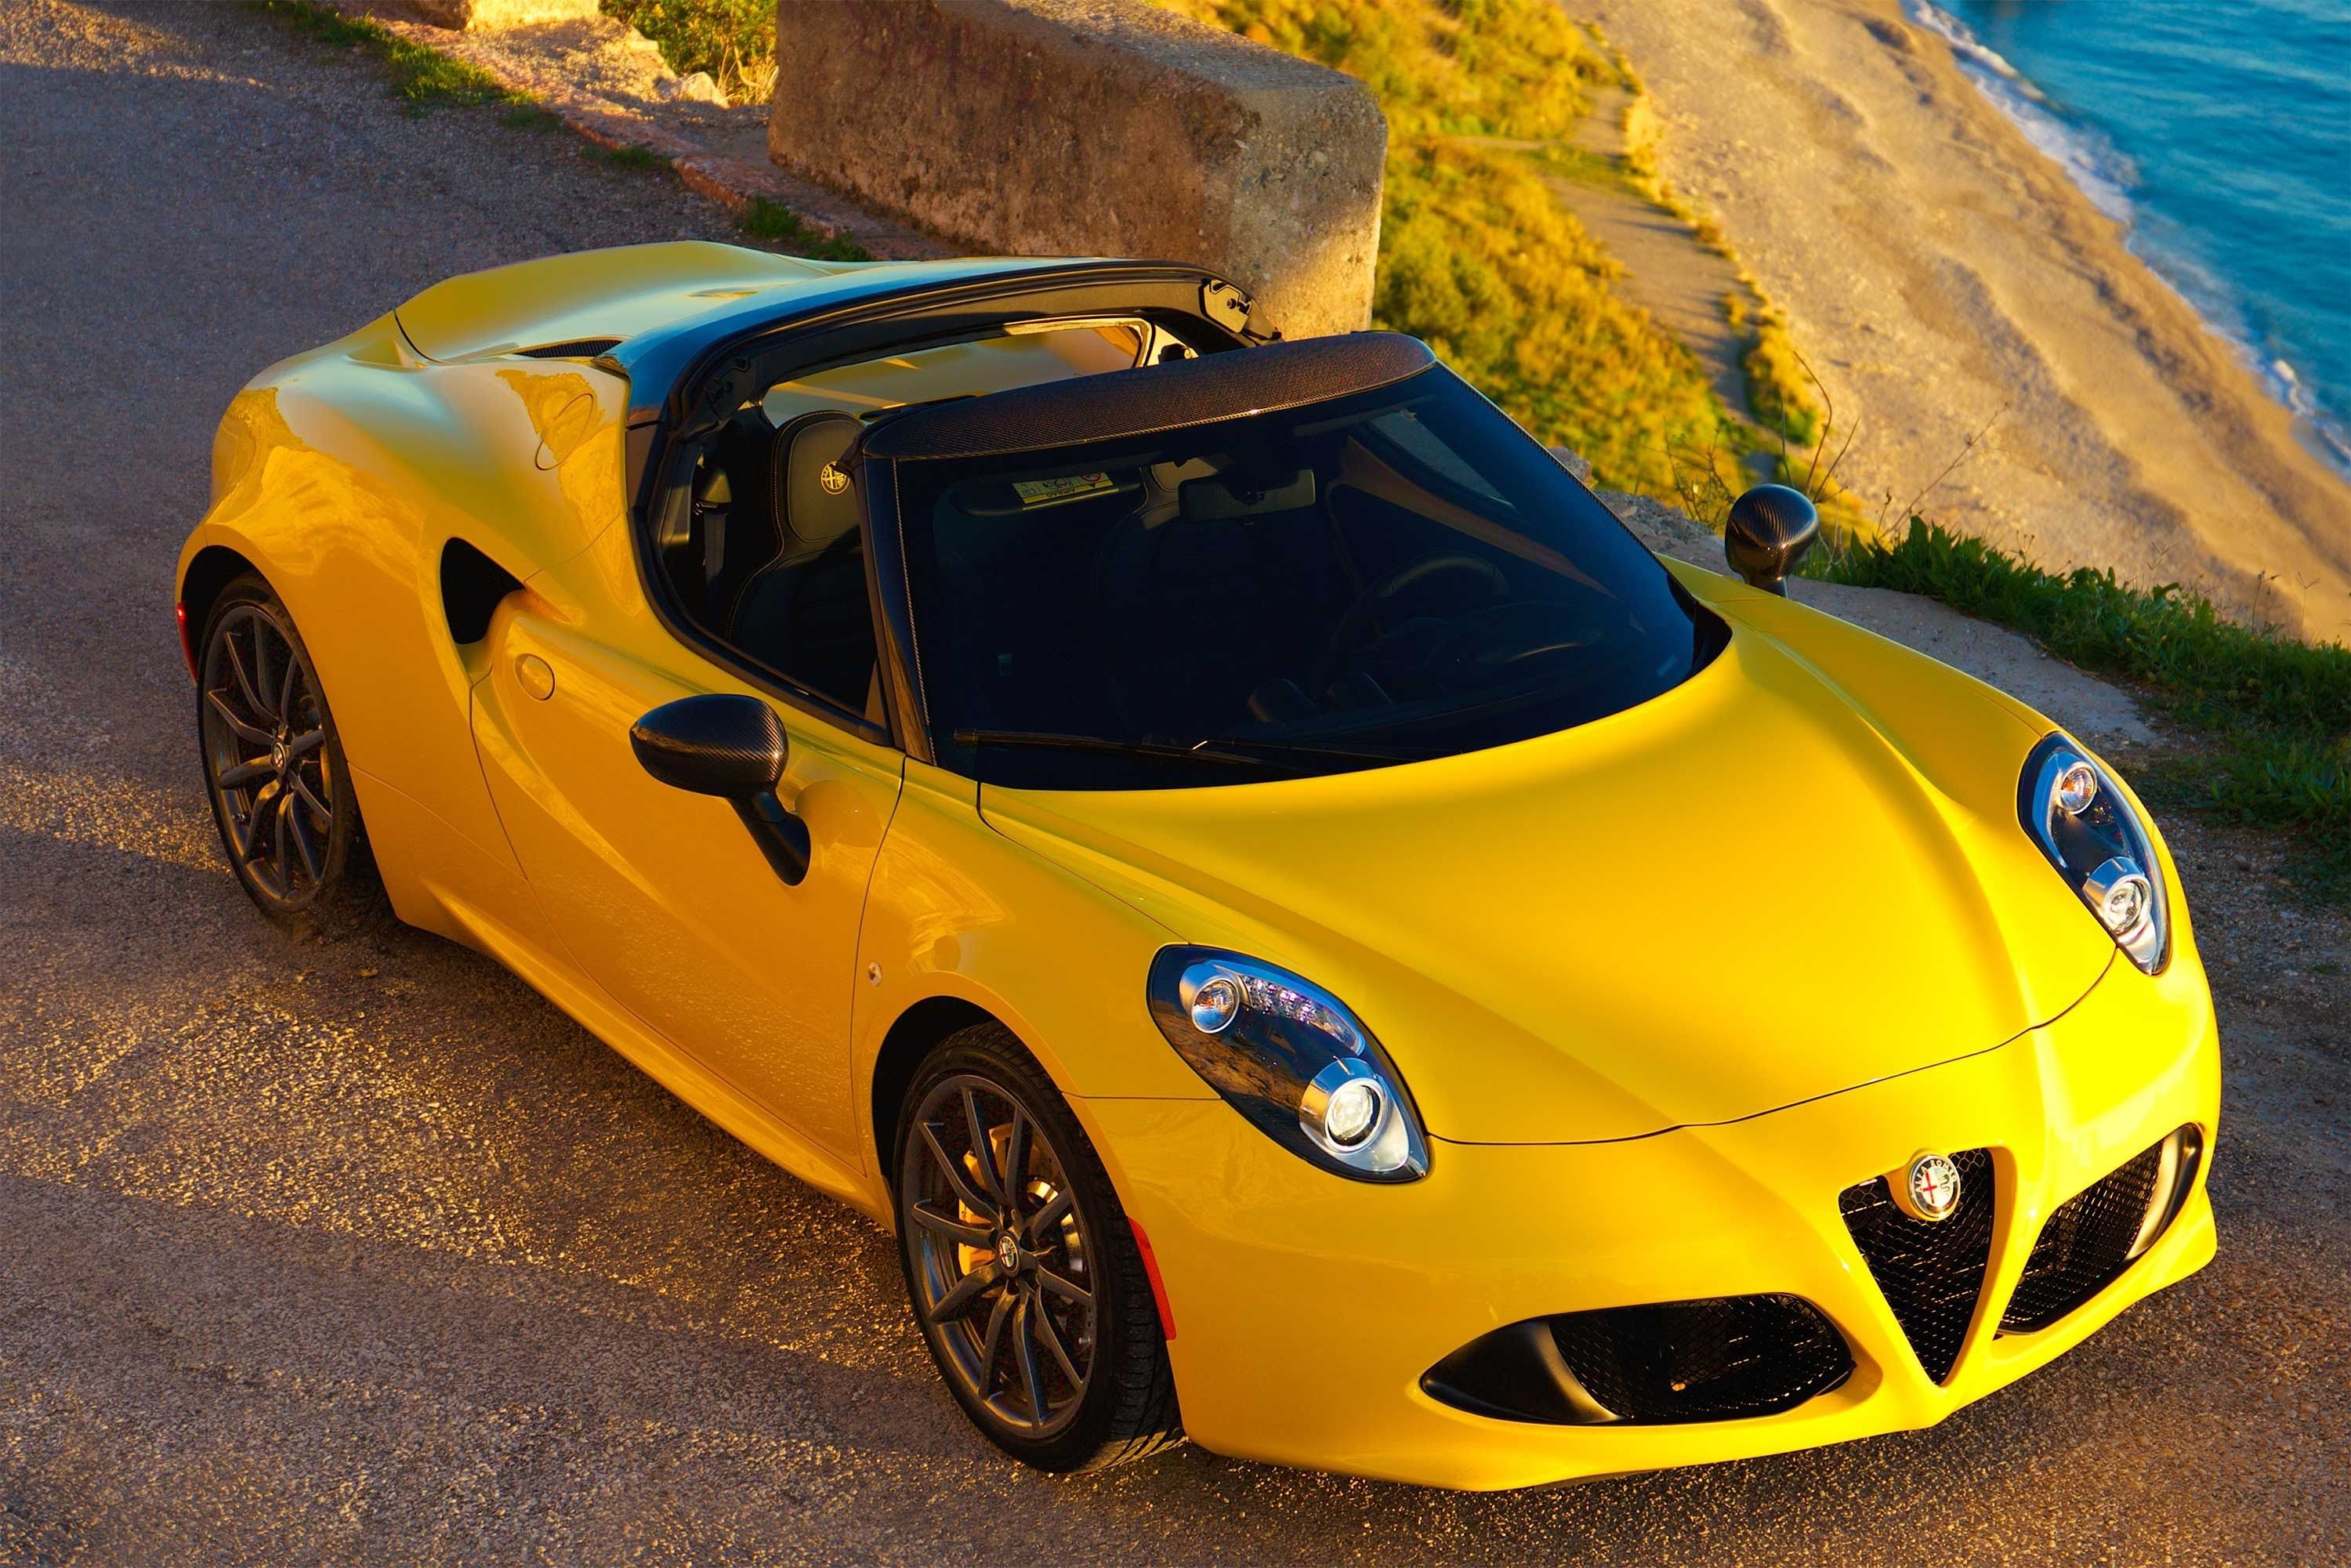 2015 Alfa Romeo 4C Spider TestDriveNow Preview by Auto Critic